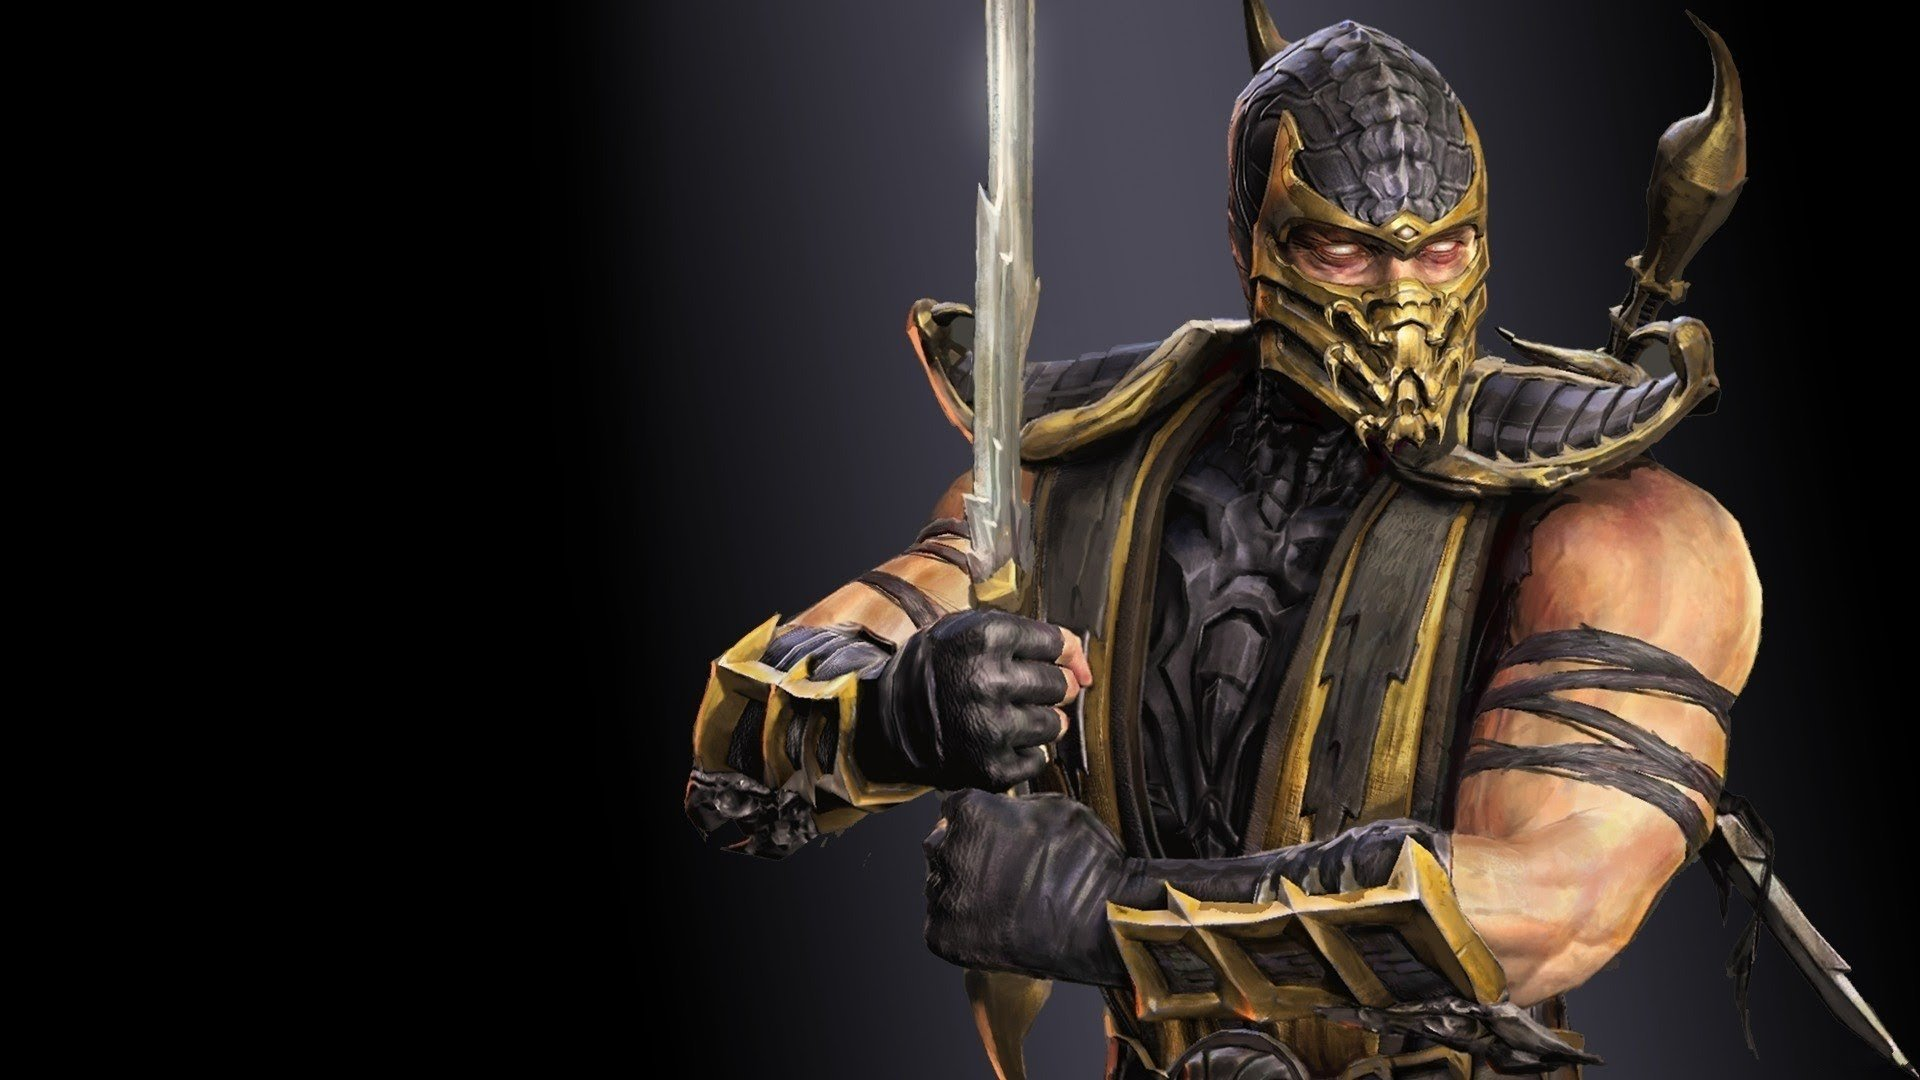 Mortal Kombat  Scorpion 1920x1080